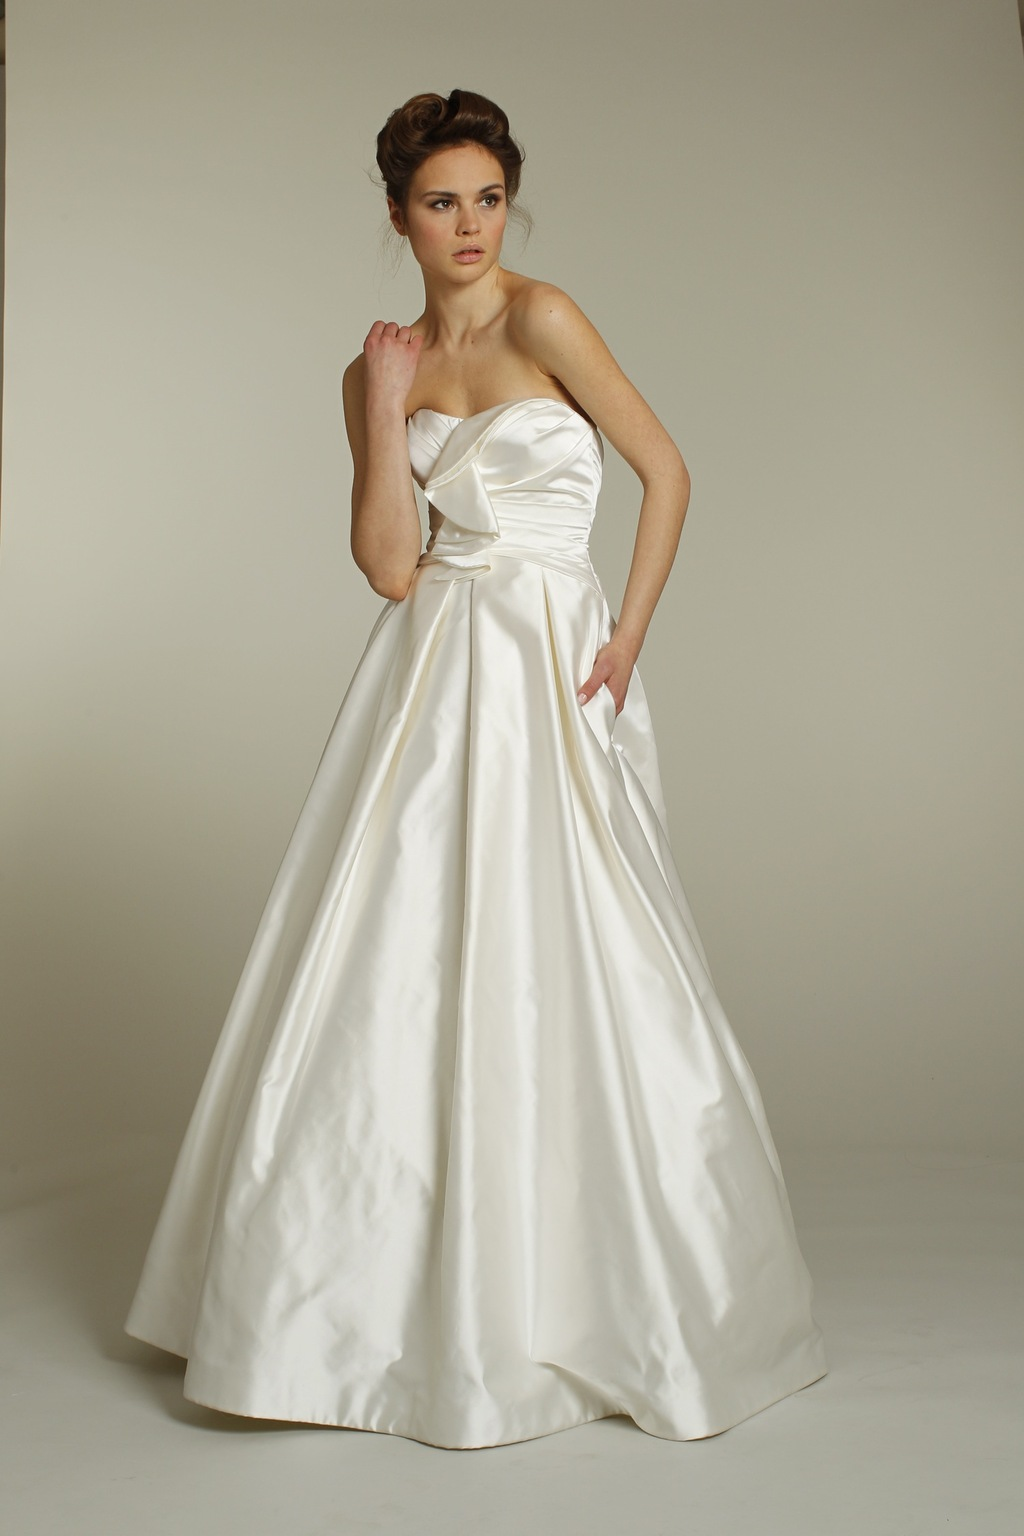 9157-alvina-valenta-wedding-dress-2011-bridal-gowns-ivory-silk-strapless-a-line-classic-bridal-style.full